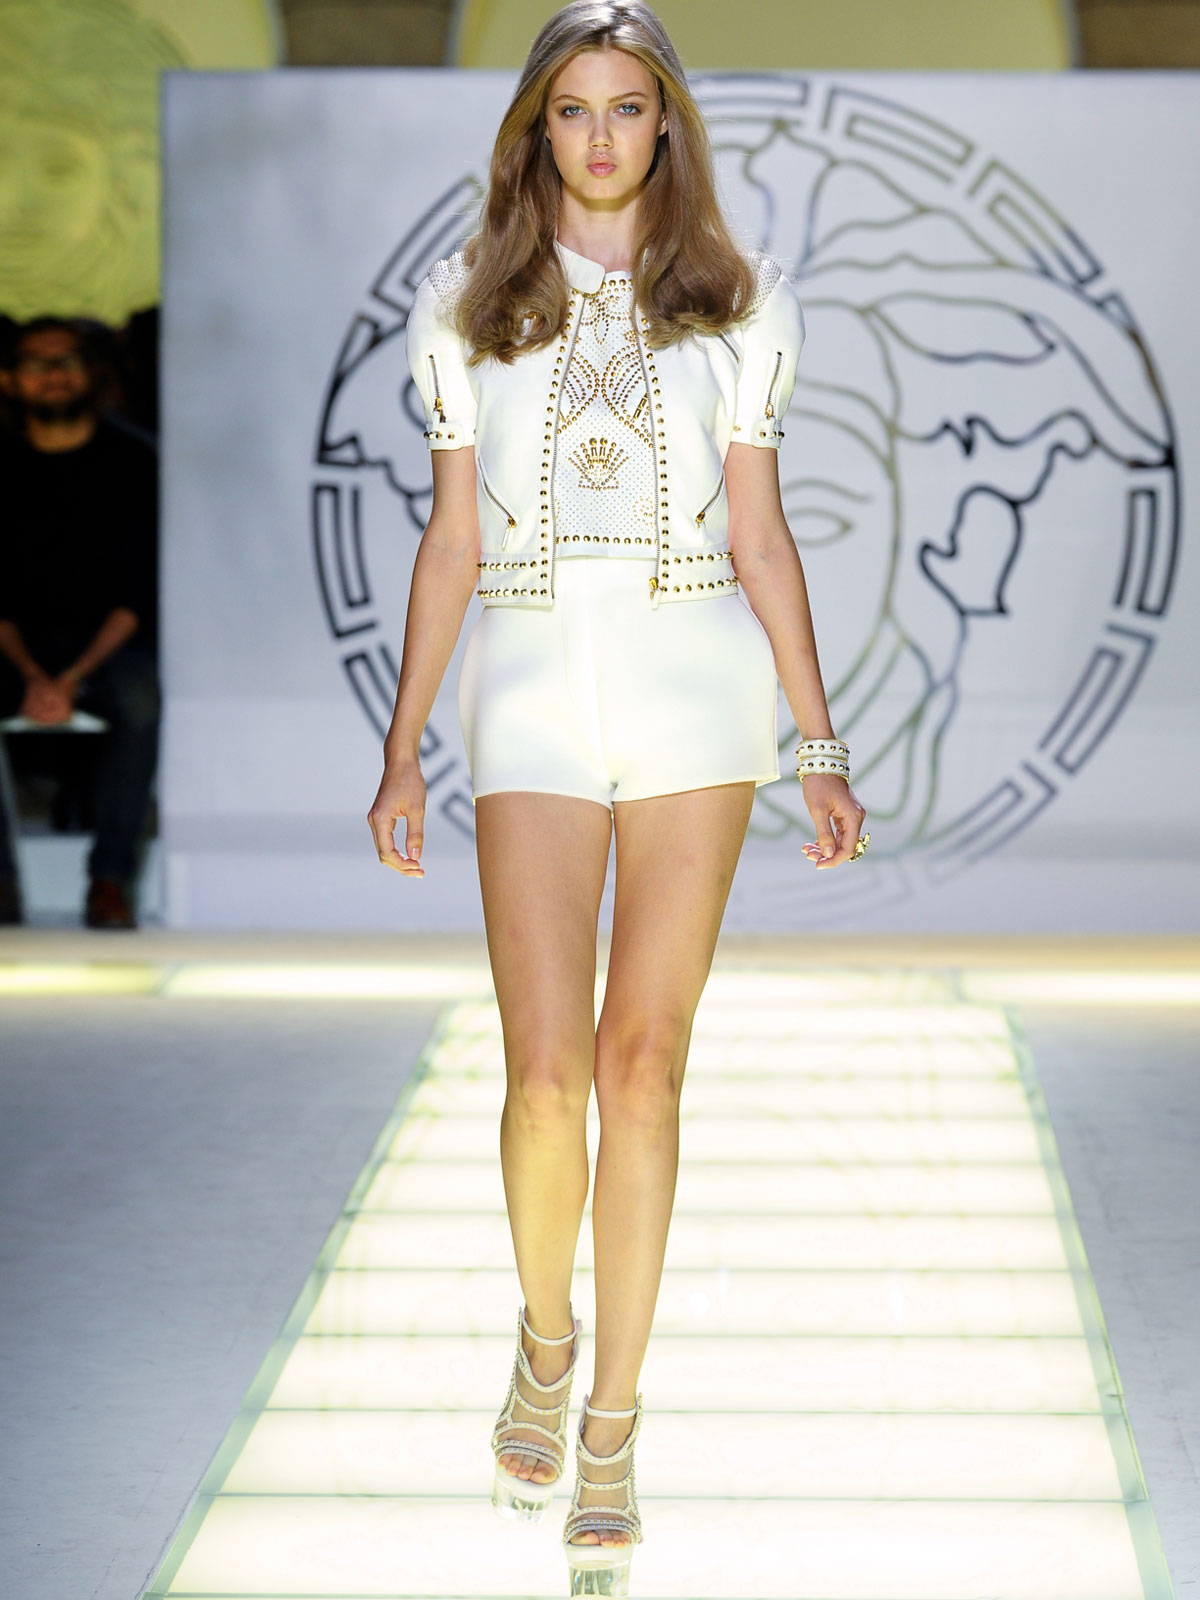 Versace fashion show zarzar models high fashion for Fashion runway shows videos